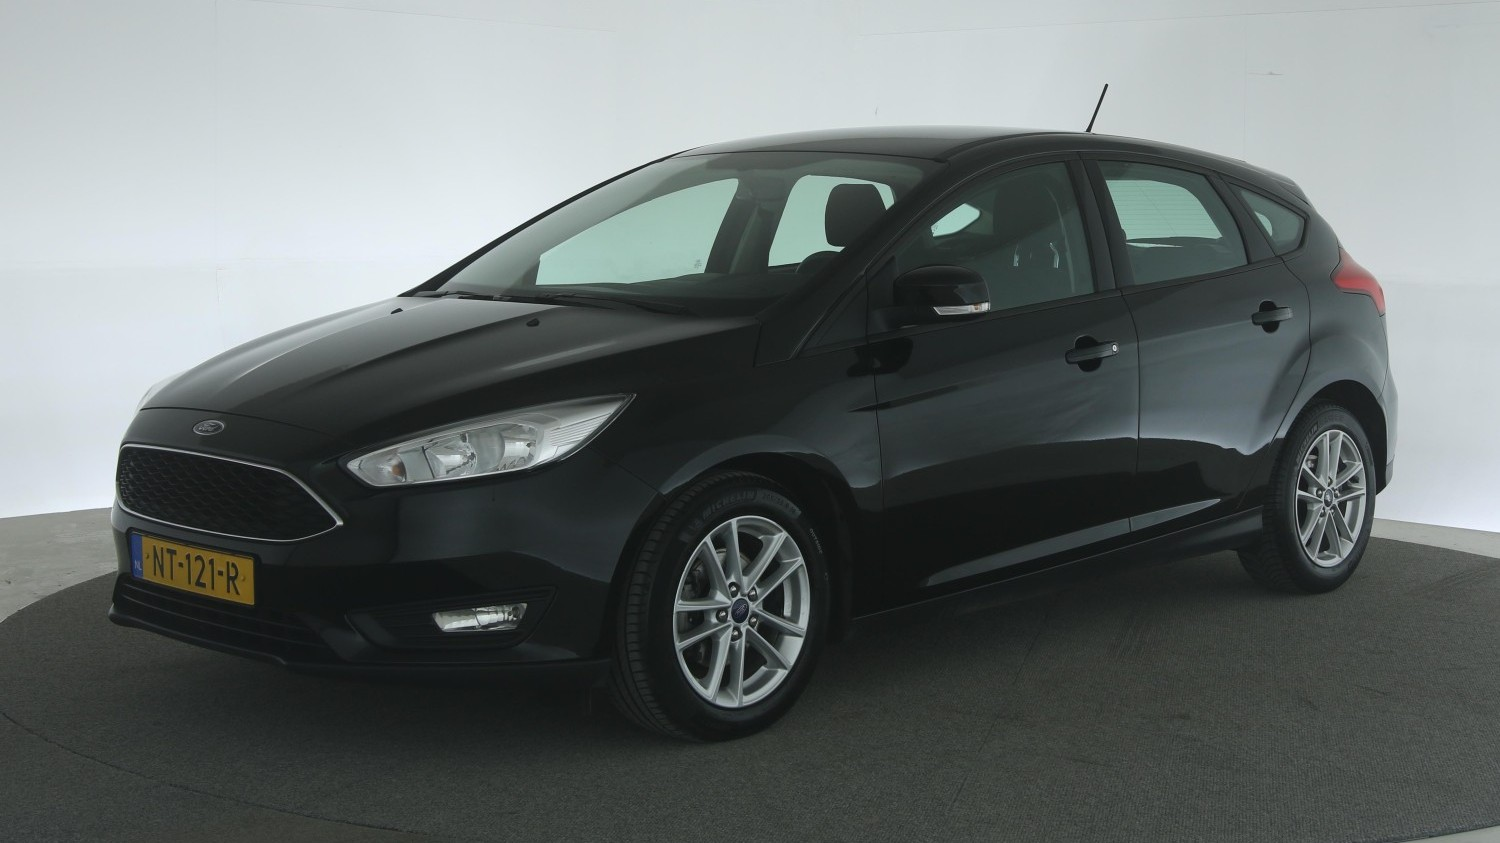 Ford Focus Hatchback 2017 NT-121-R 1